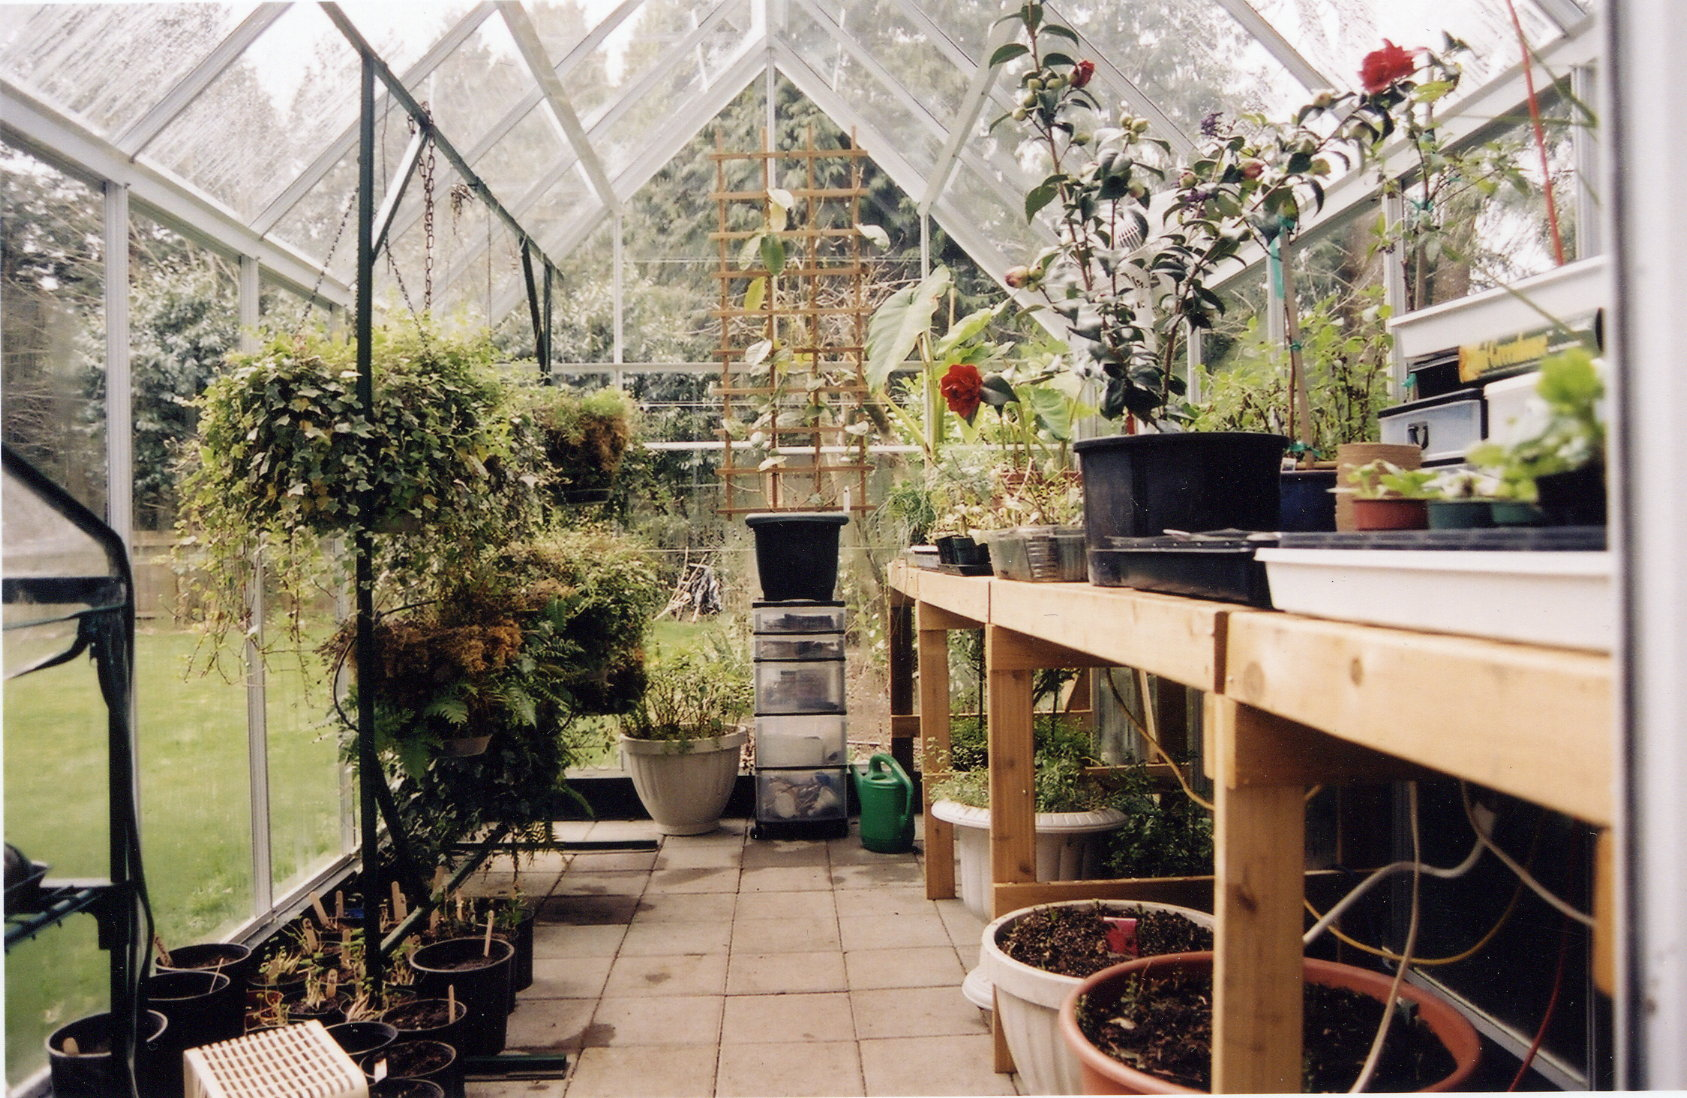 greenhouse growing